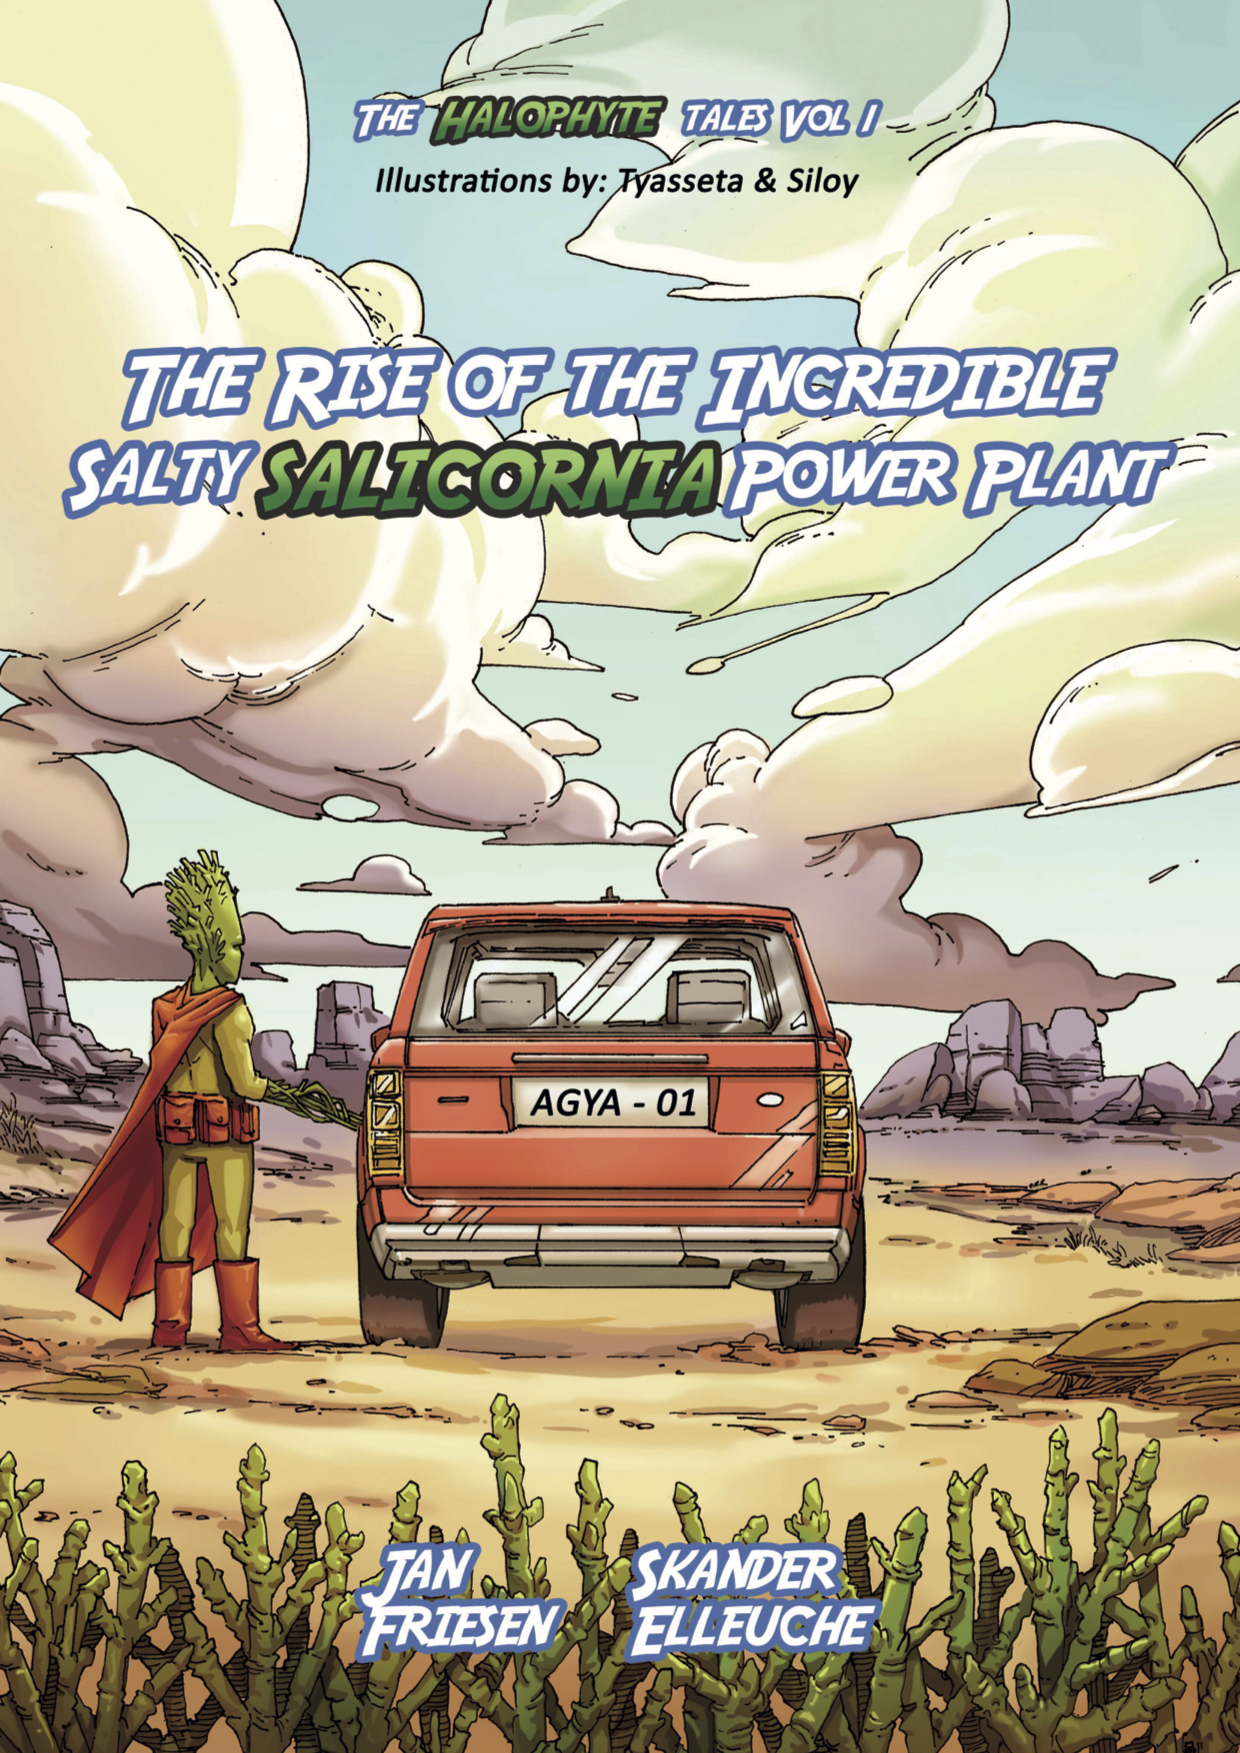 Wissenschaftscomic - The Rise Of The Incredible Salty Salicornia Power Plant